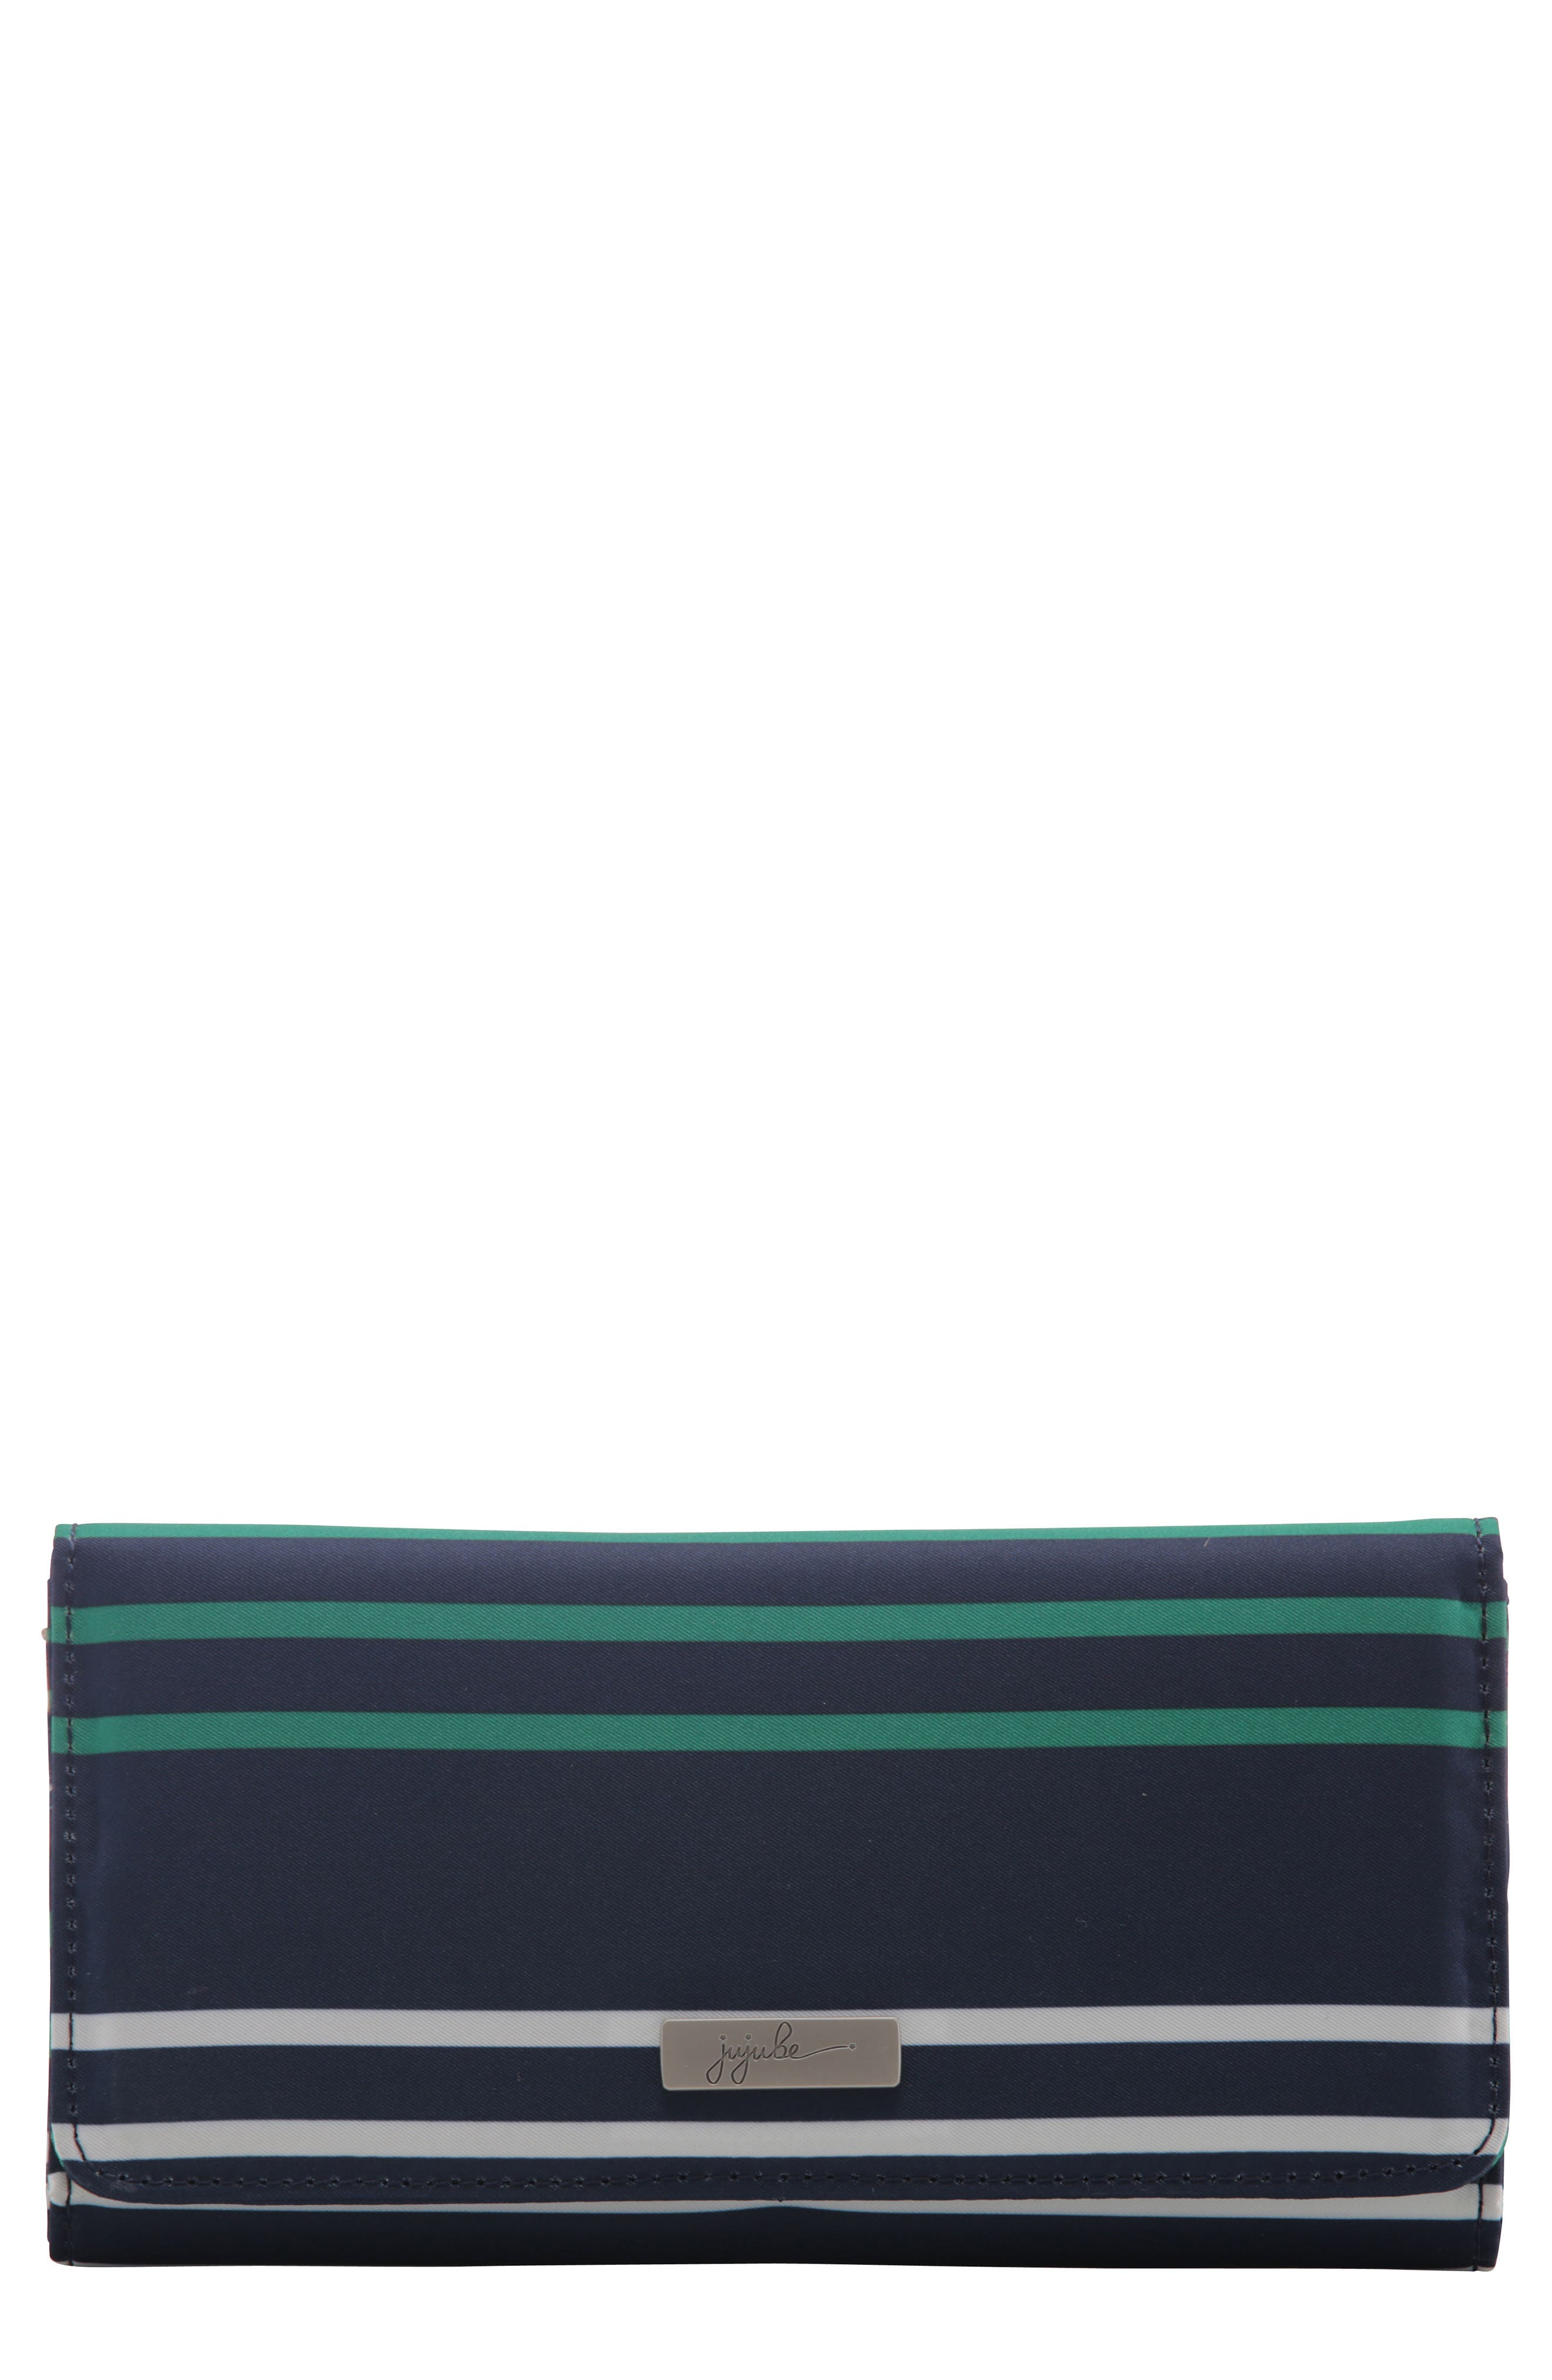 Be Rich - Coastal Collection Trifold Clutch Wallet,                         Main,                         color, PROVIDENCE